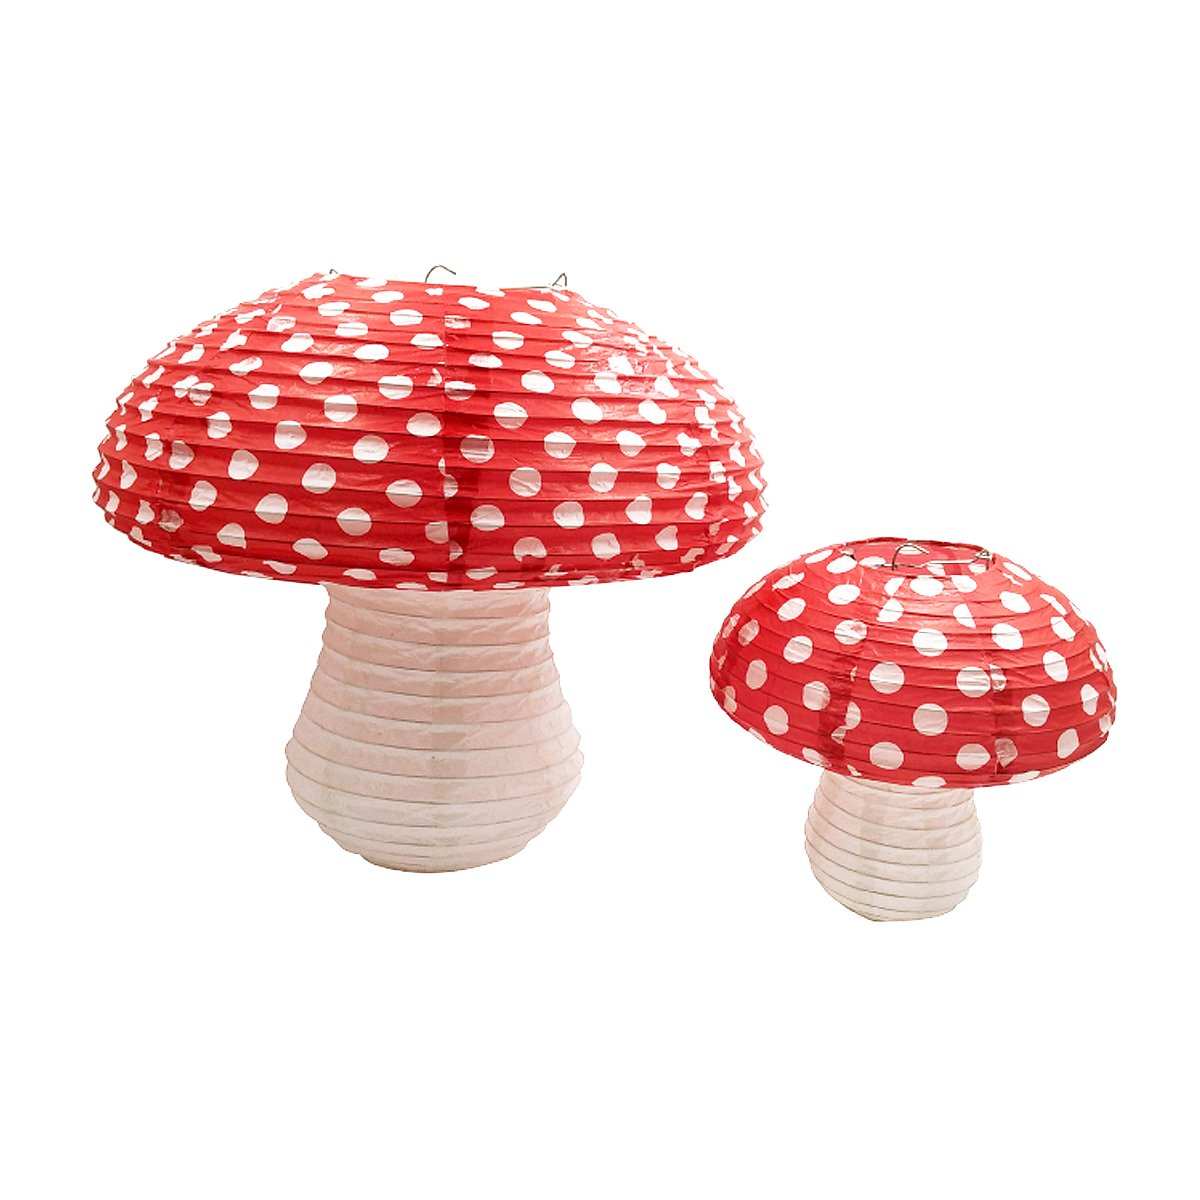 NICROLANDEE 3D Mushroom Shaped Chinese/Japanese Hanging Paper Lanterns for Fairy Party Alice in Wonderland Kids Room Decor Nursery Decor Kids Toys 2 Pcs (Different Sized)